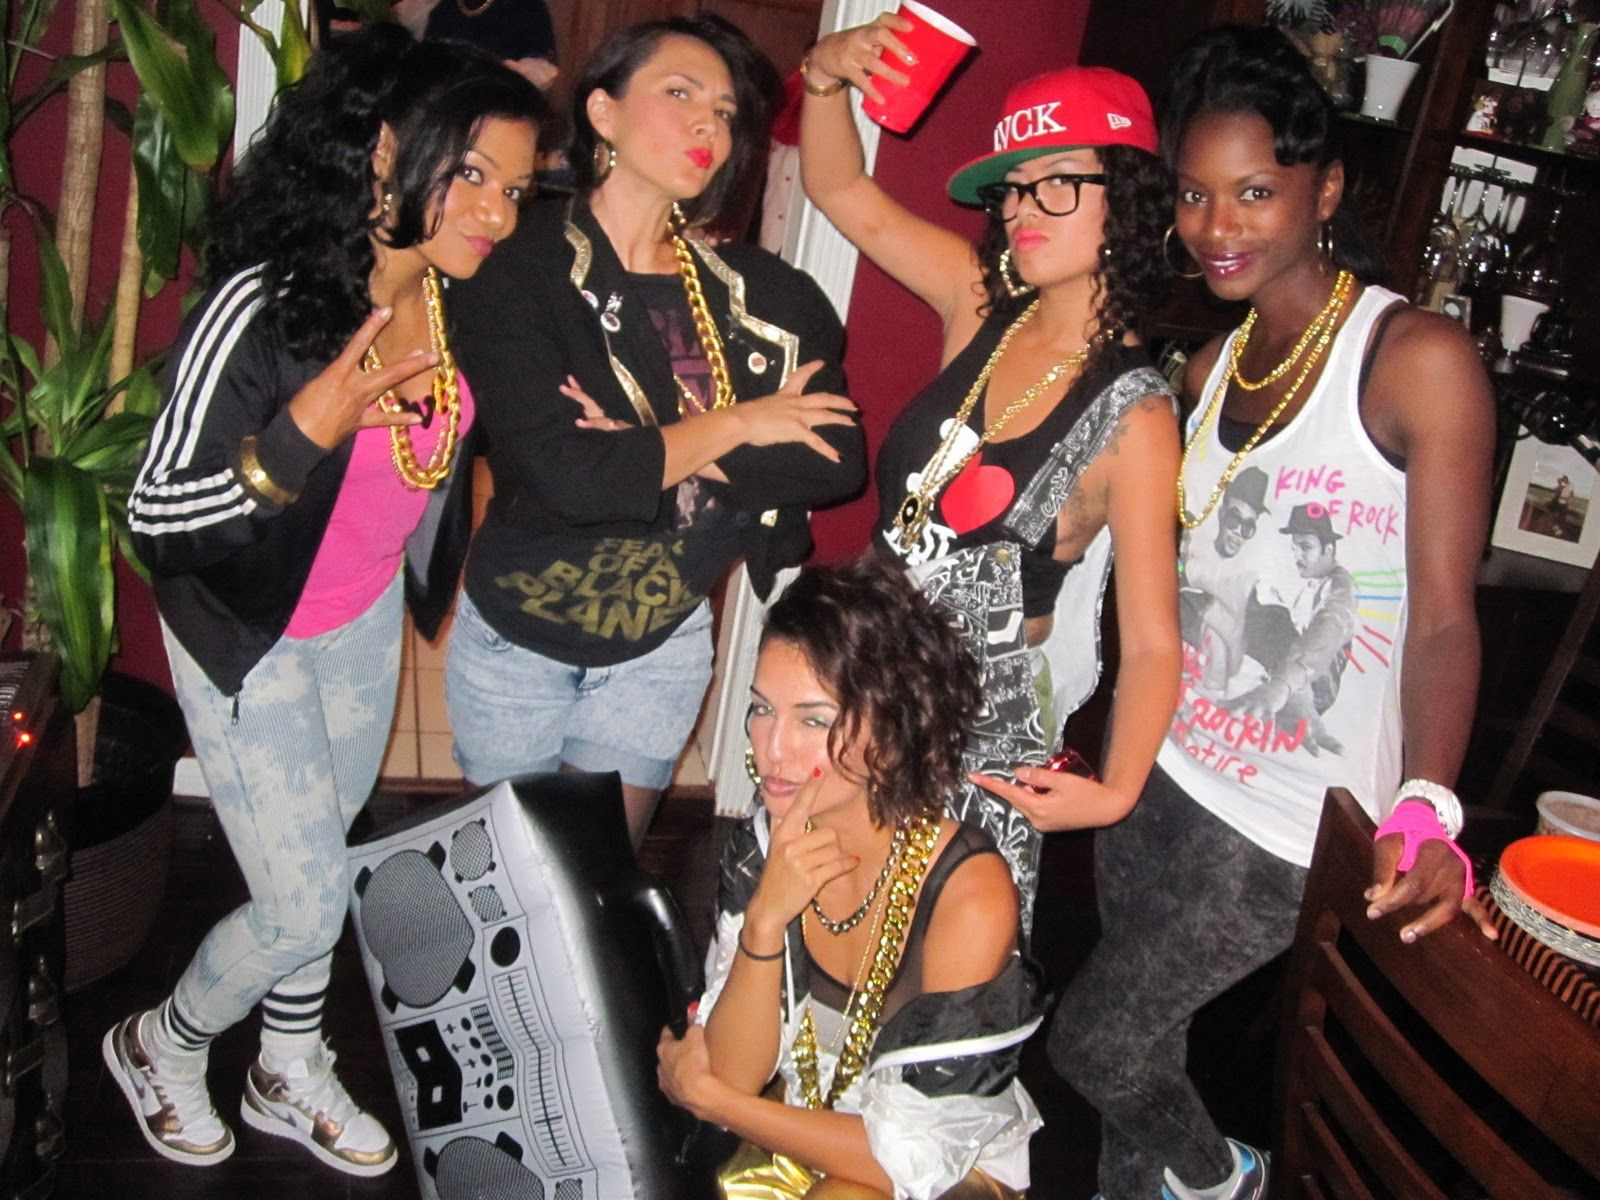 Posts From October 2010 On The Tk Times 90s Theme Party Outfit 80s Hip Hop Fashion 90s Hip Hop Outfits